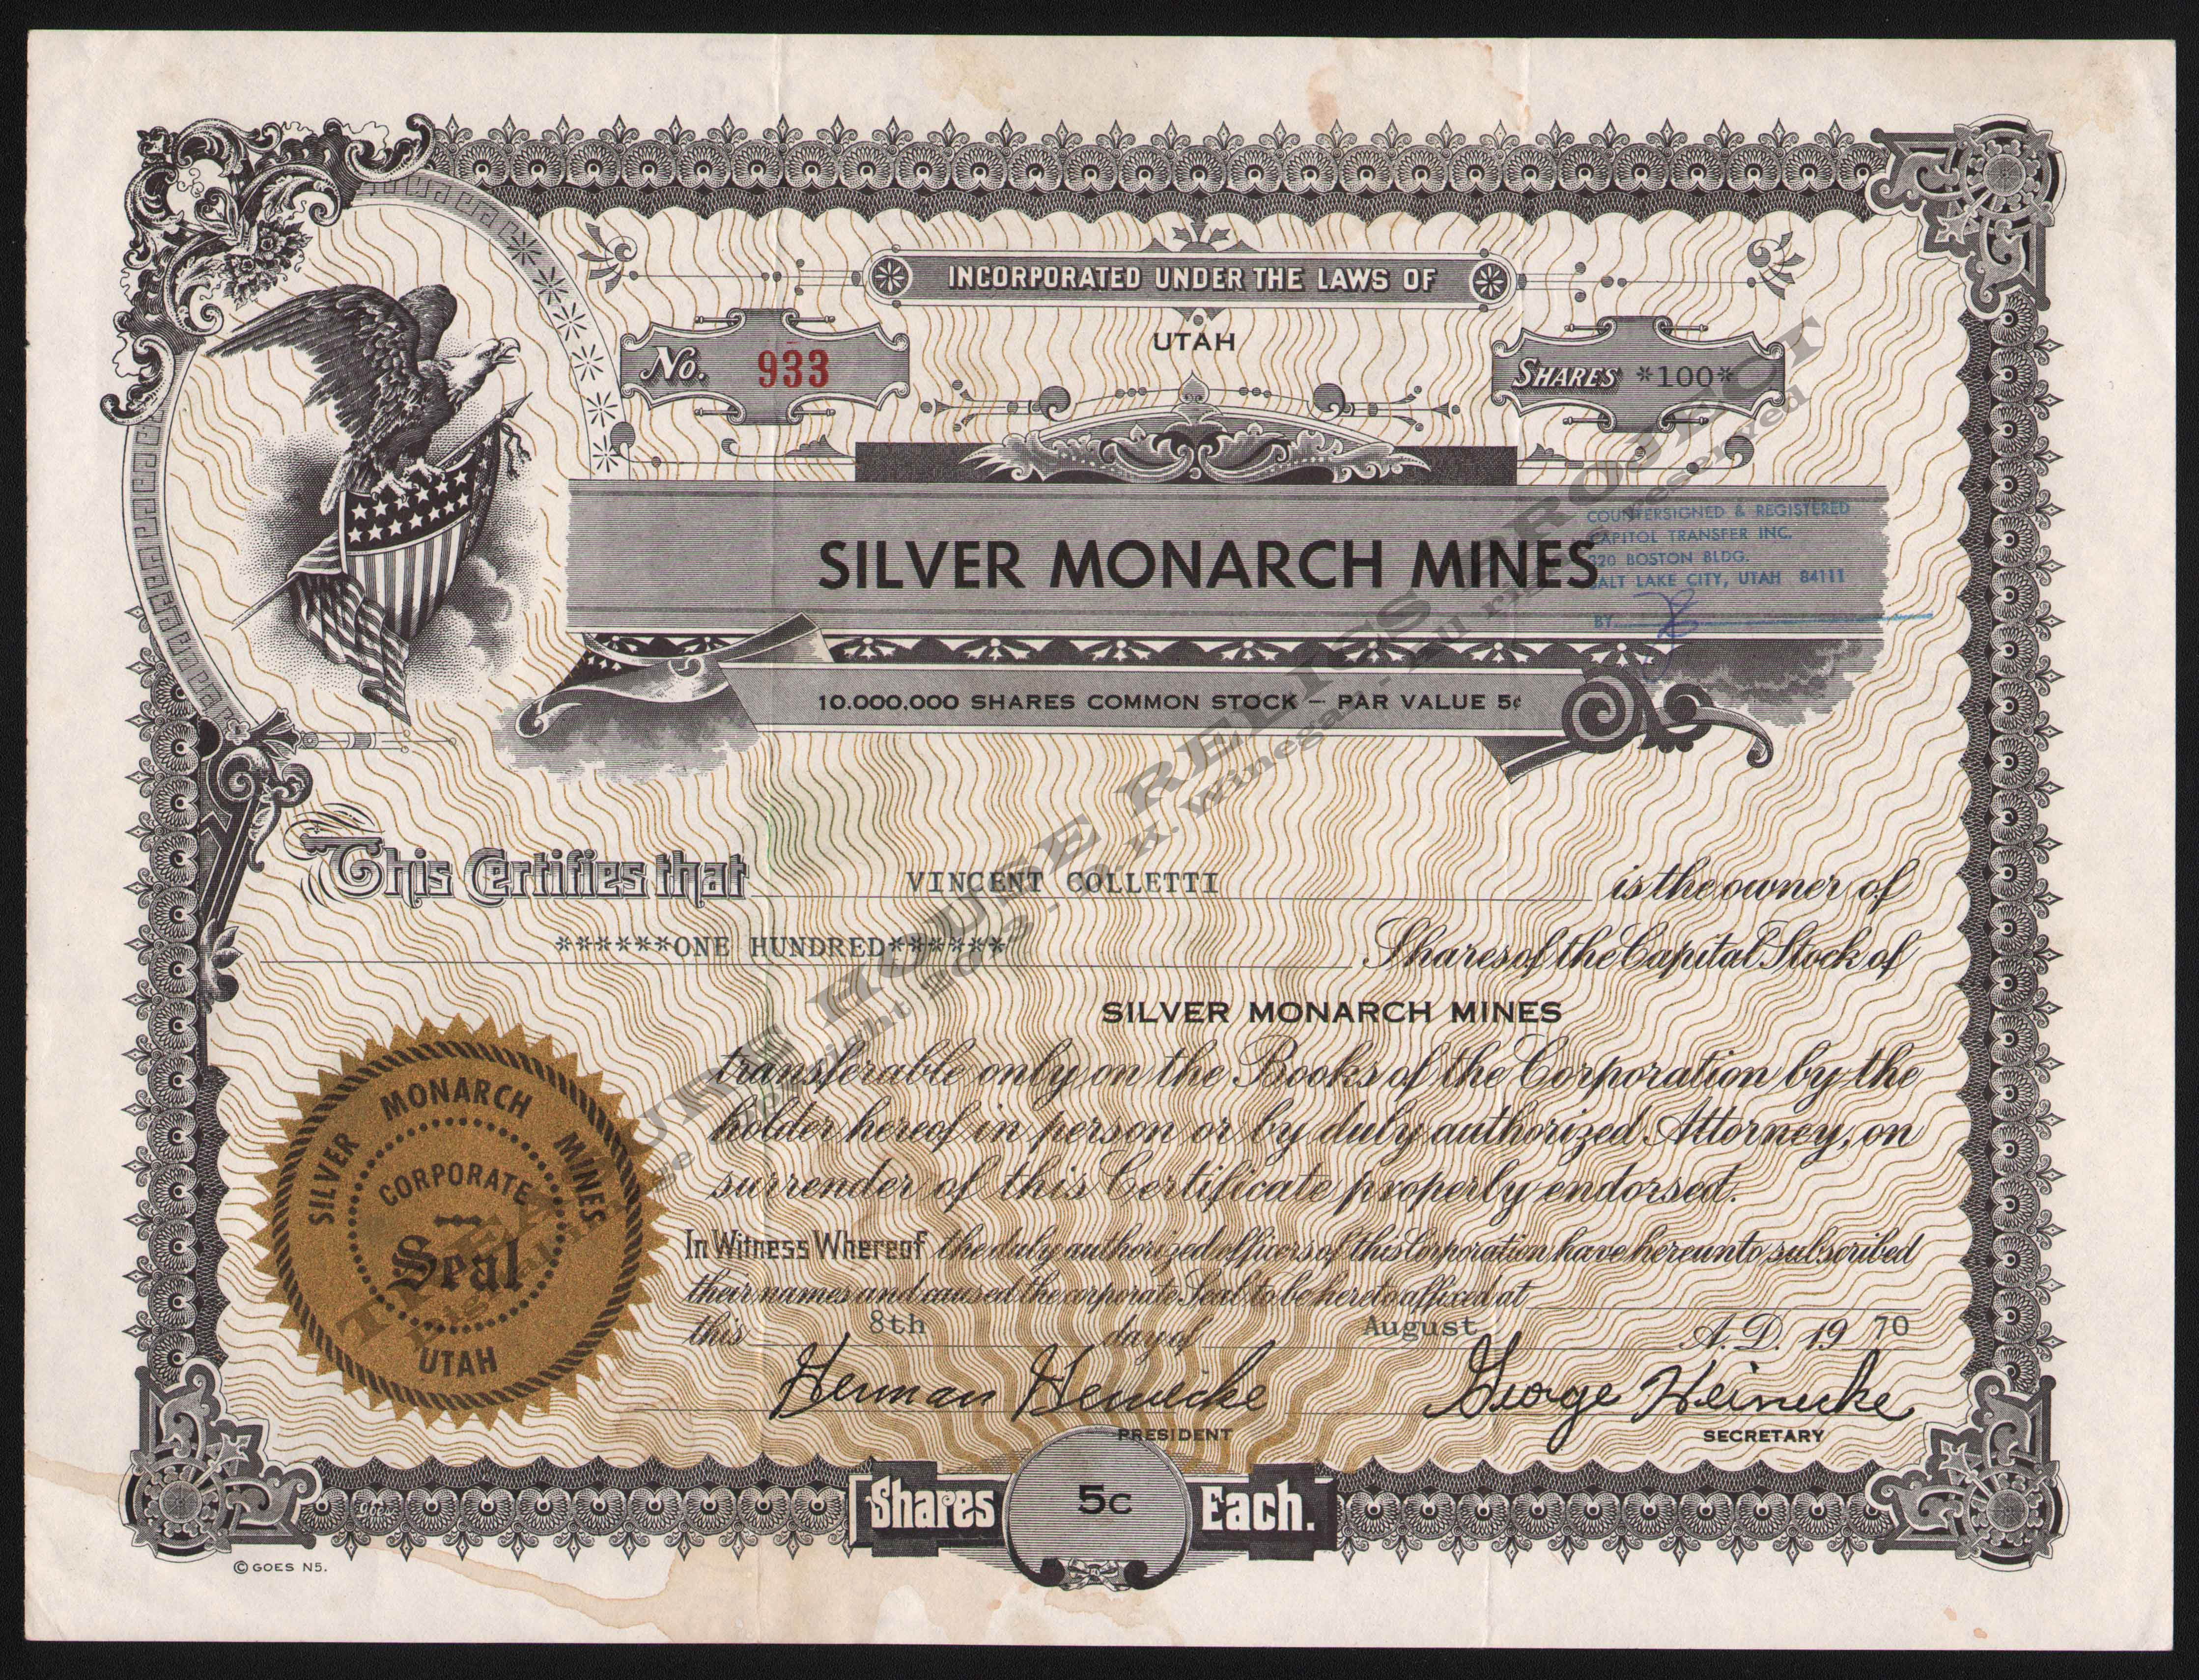 LETTERHEAD/SIOUX_MINES_COMPANY_3114_1930_TINTIC_GP_400_CROP_EMBOSS.jpg